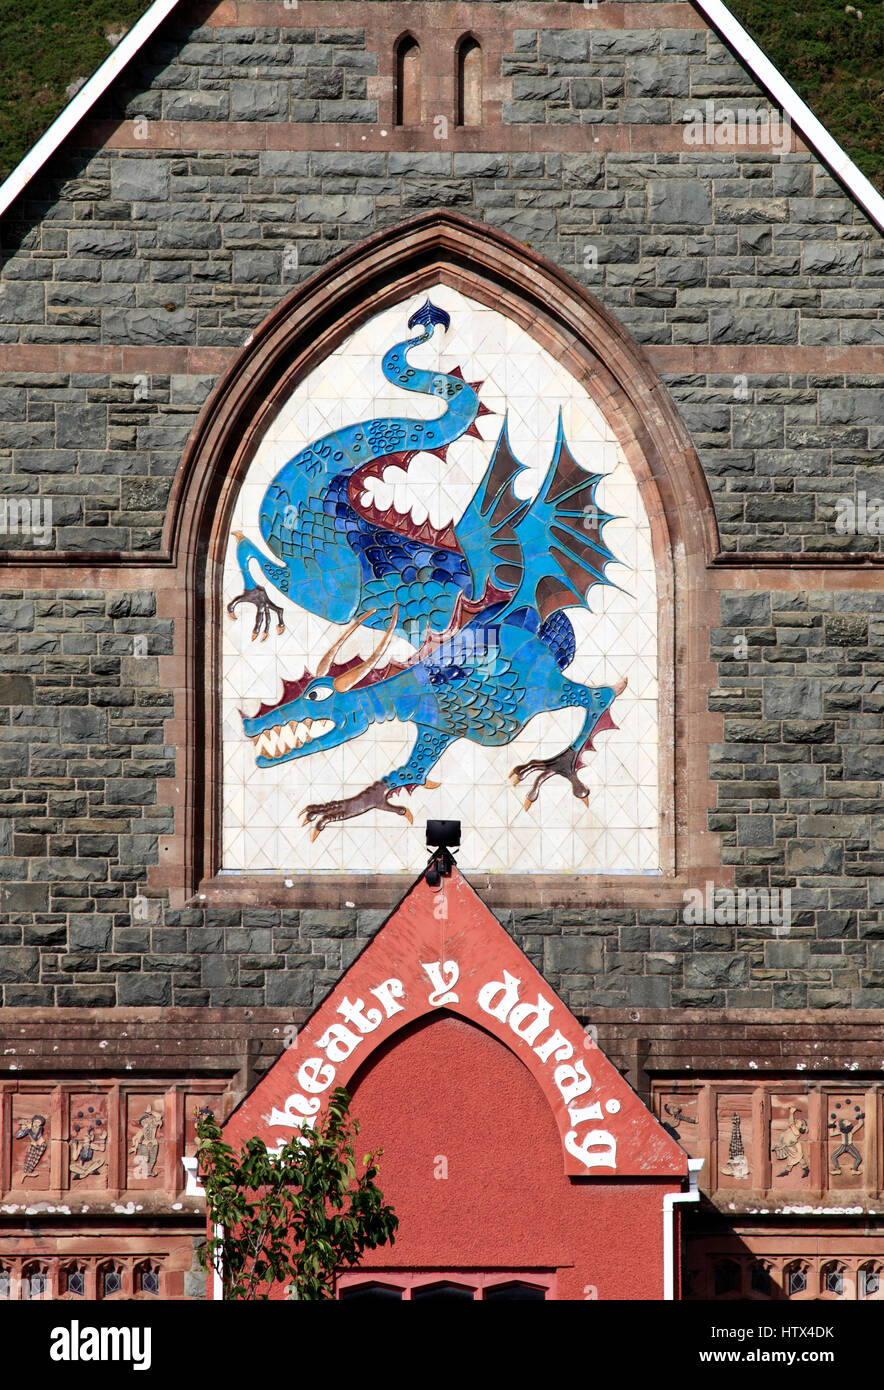 The Dragon Theatre, Barmouth, Wales, Europe - Stock Image